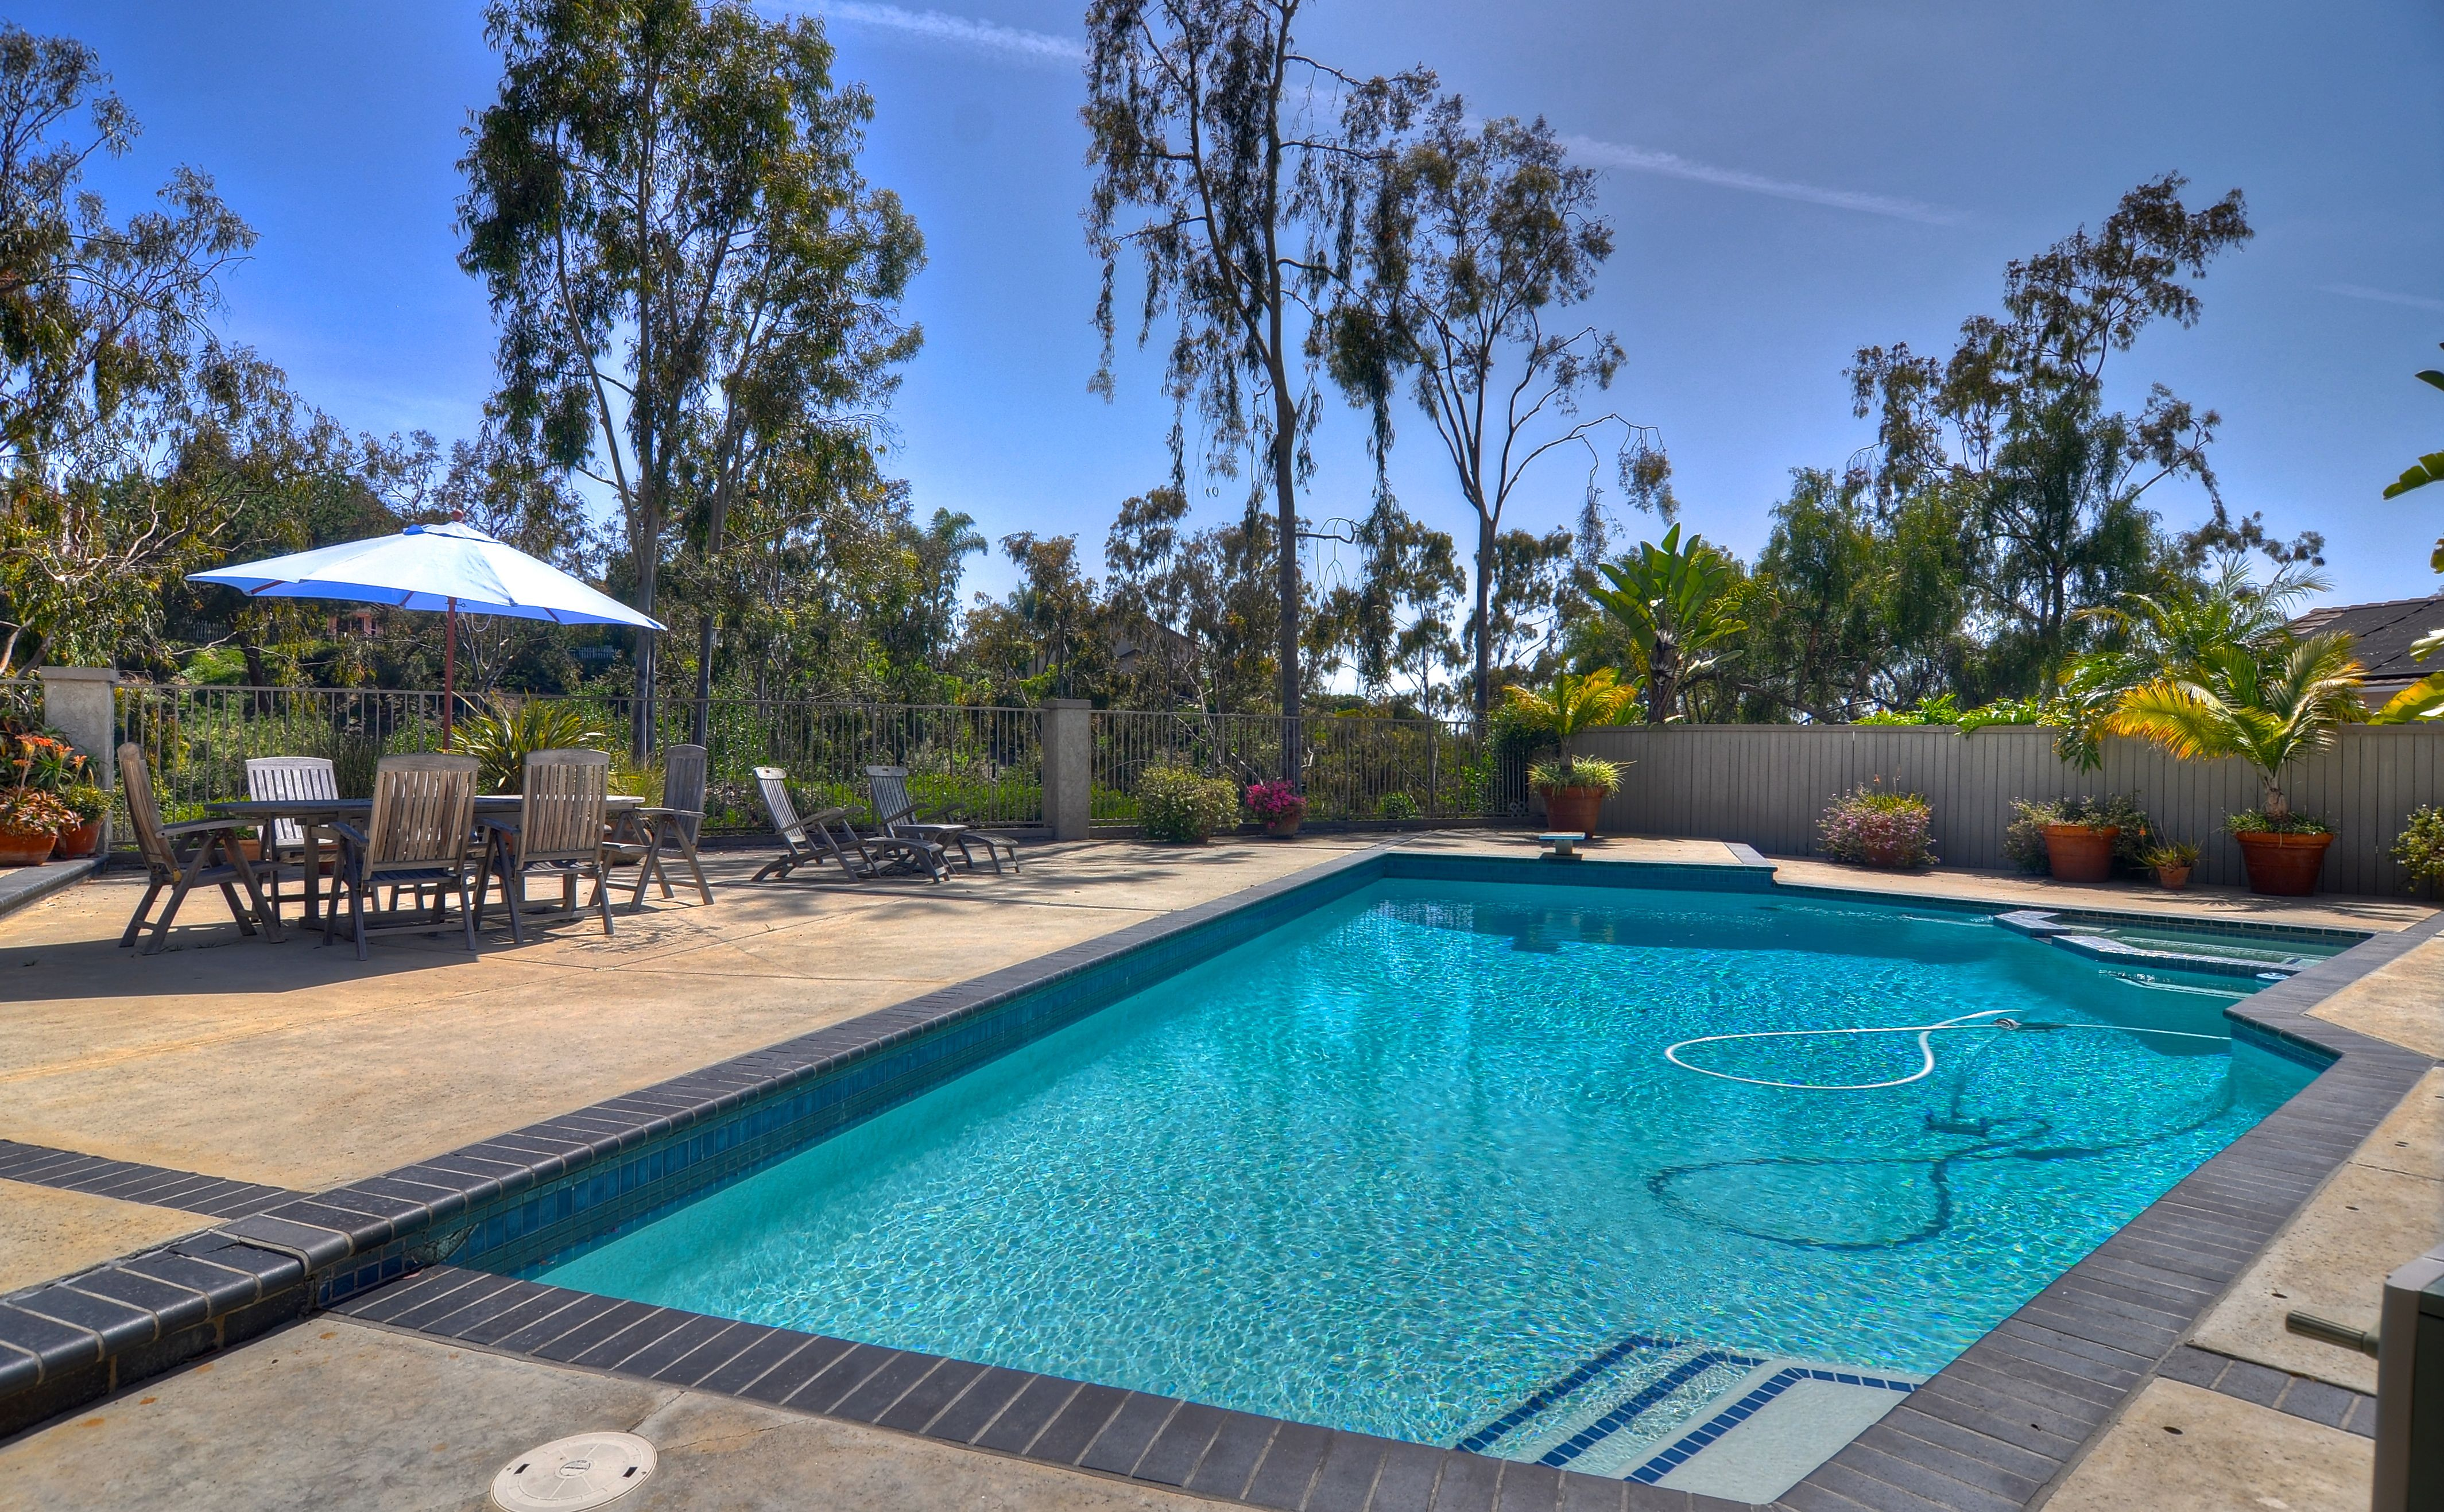 Www Searchochomesforsale Com Tucson Apartments Apartments For Rent Outdoor Spaces